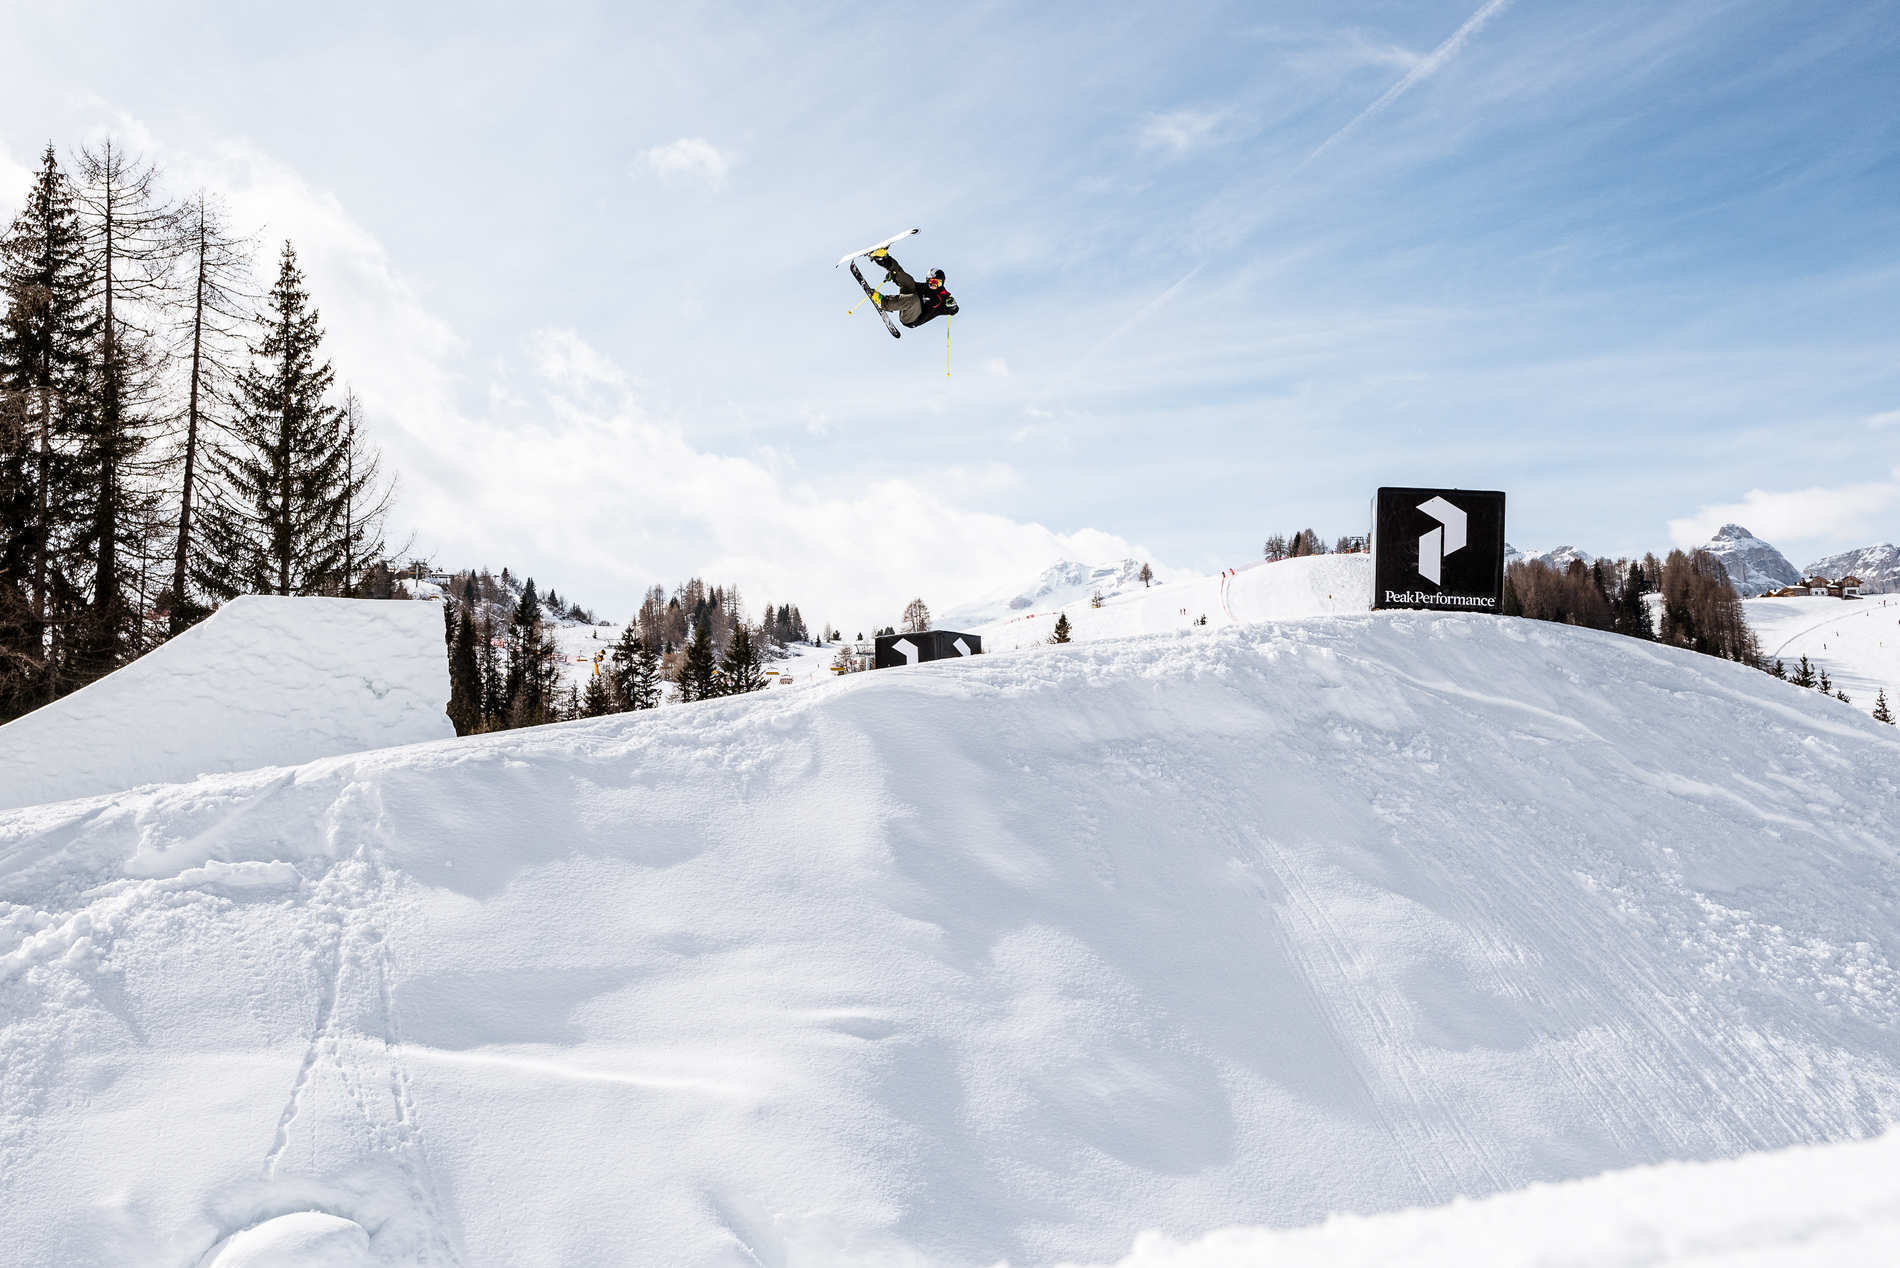 web alta badia 09 03 2019 action fs unknown rider christian riefenberg qparks 30